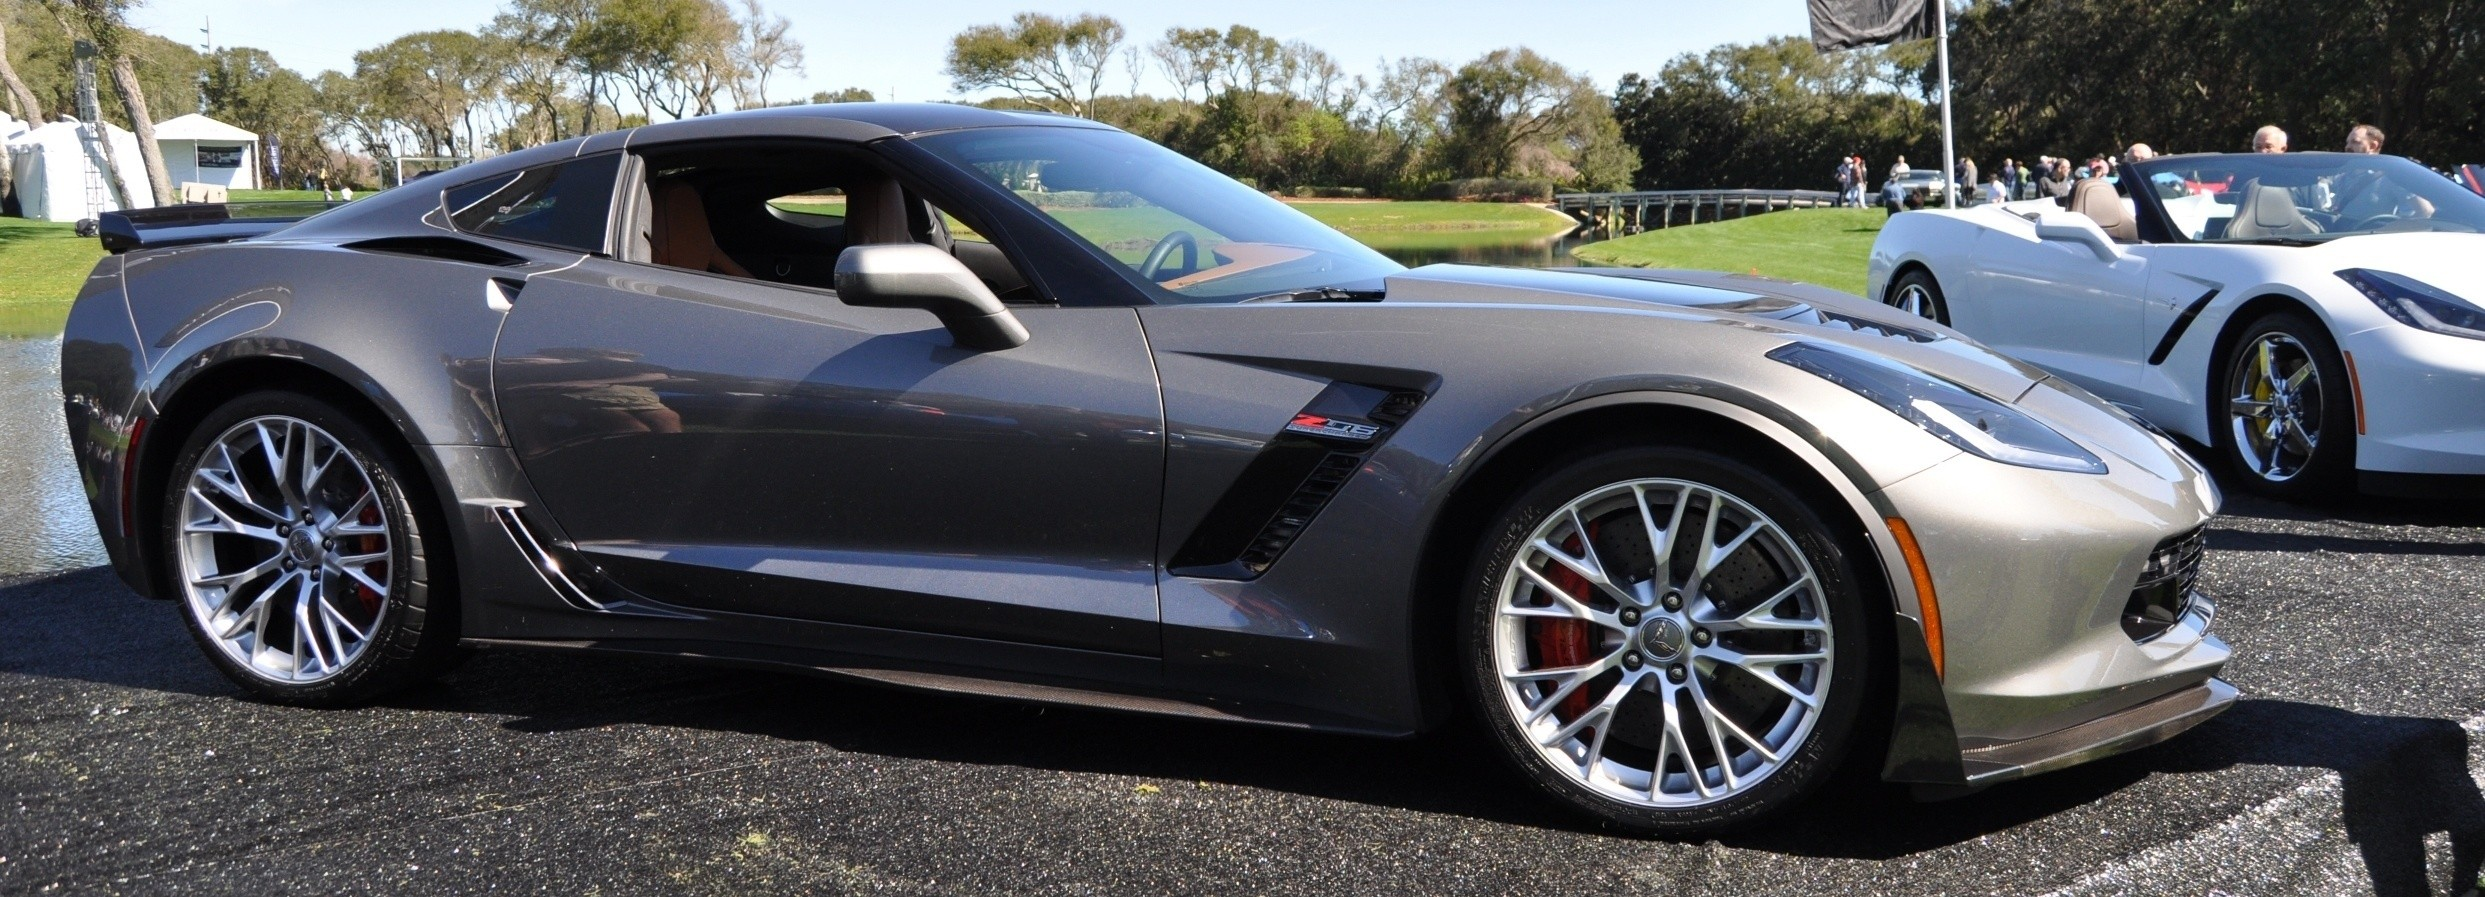 2015 Z06 -- First Outdoor Showing -- Forthcoming Chevrolet Corvette Track Monster Holds Still For 26 High-Res Photos 10